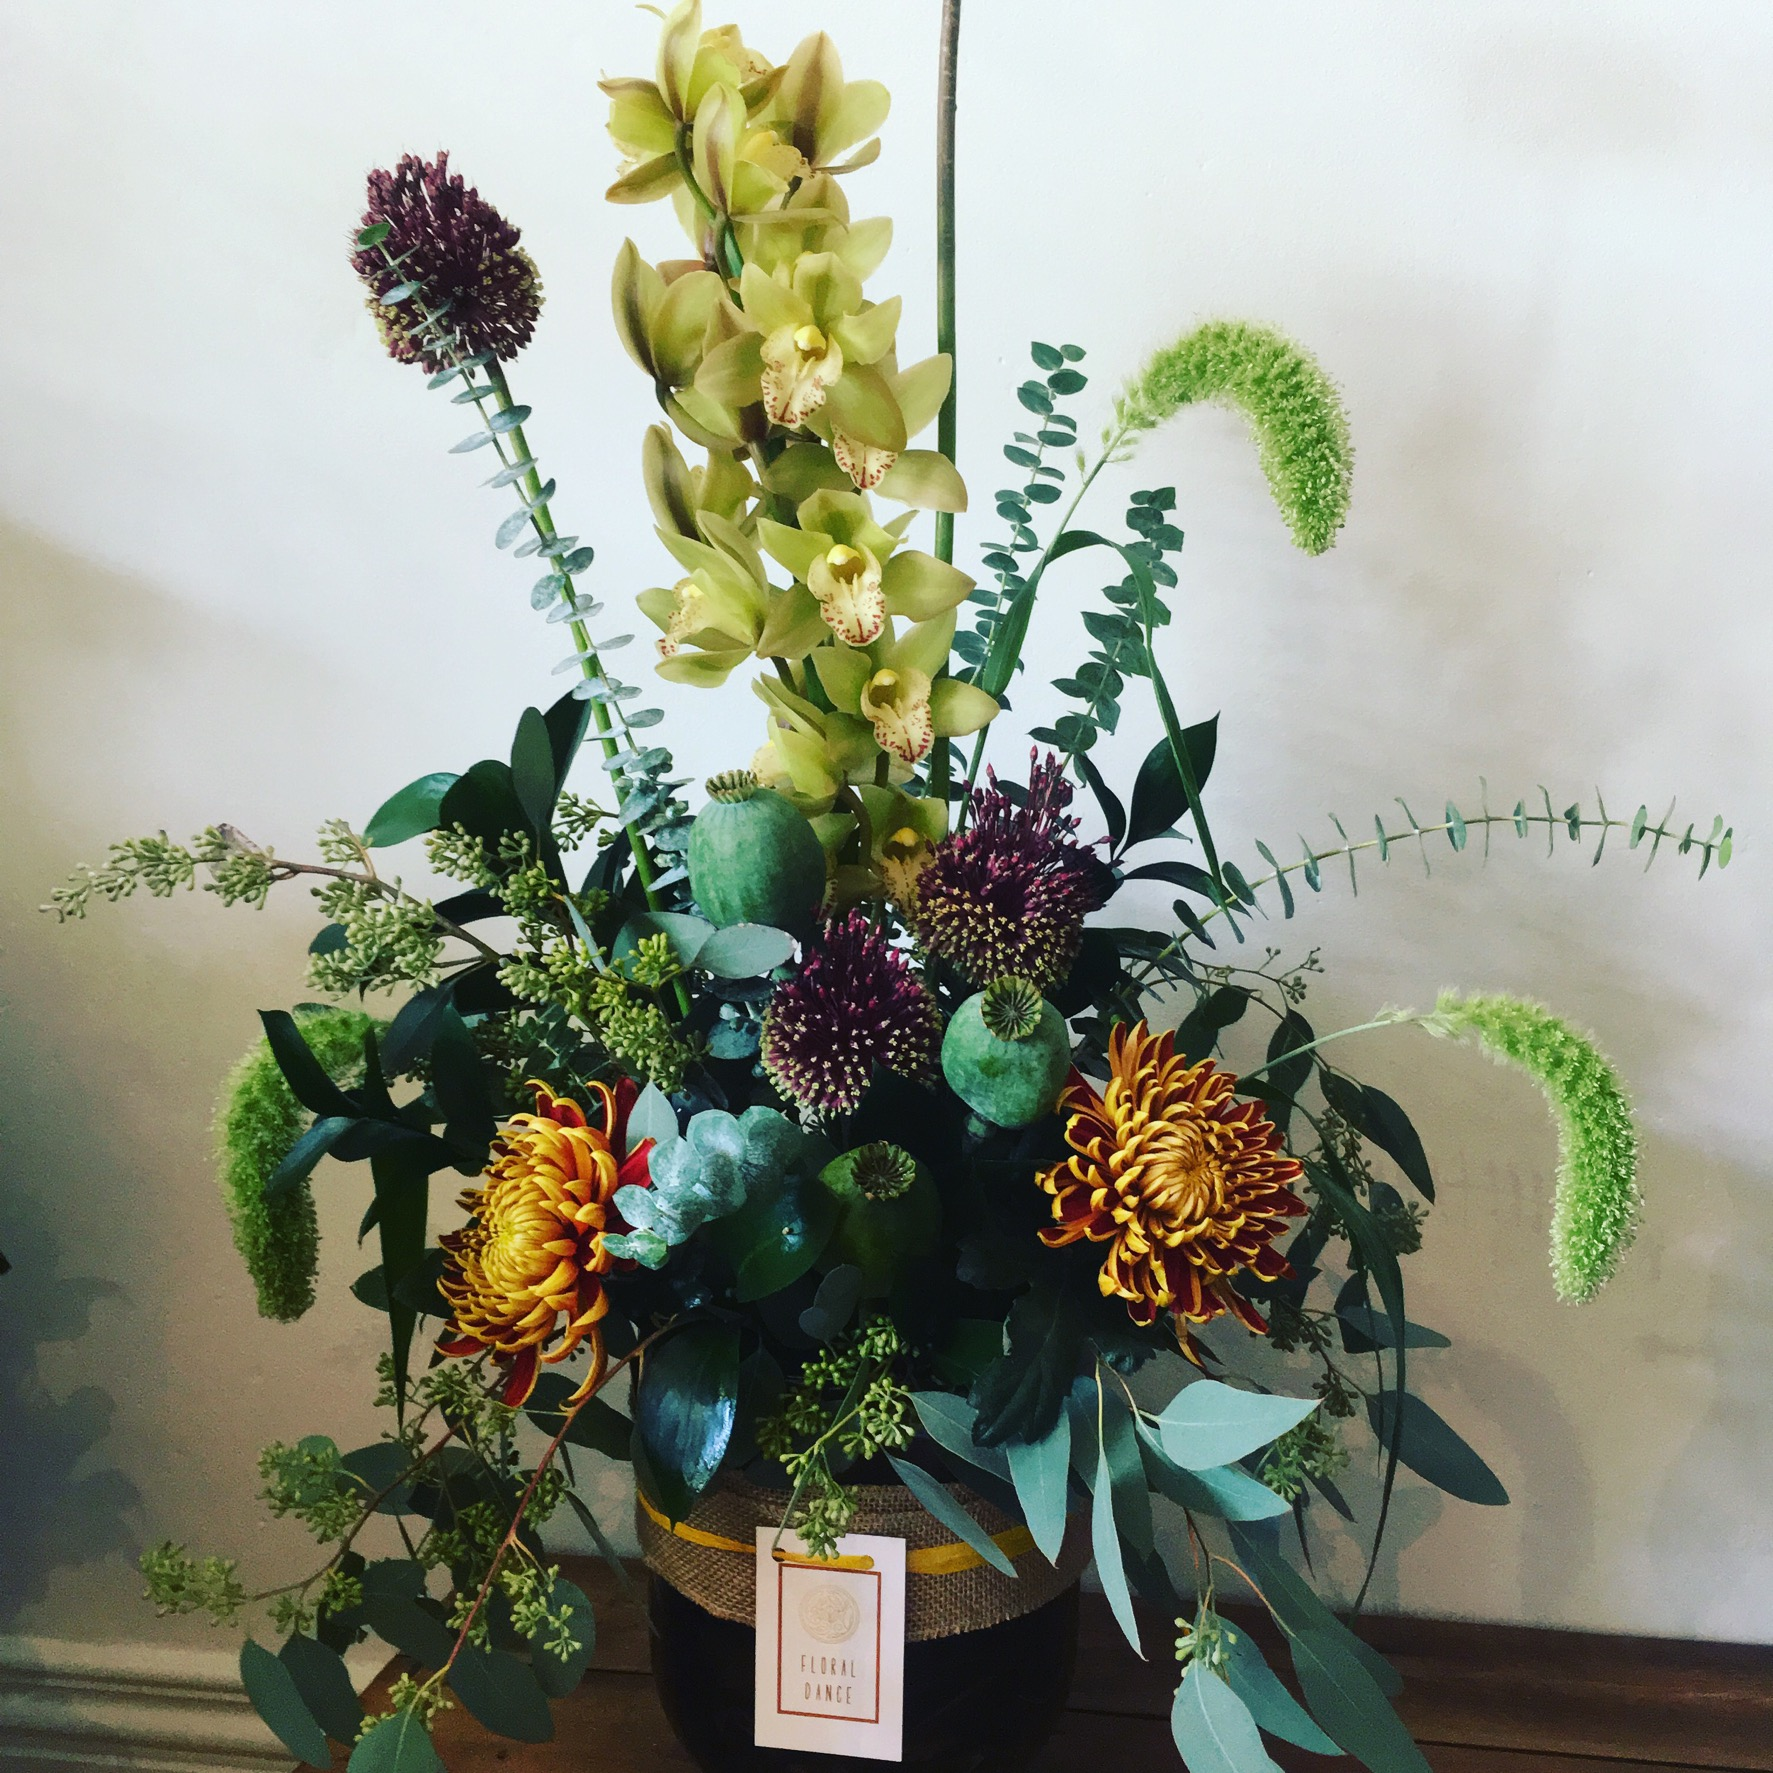 Flowers for the Wheatley Arms